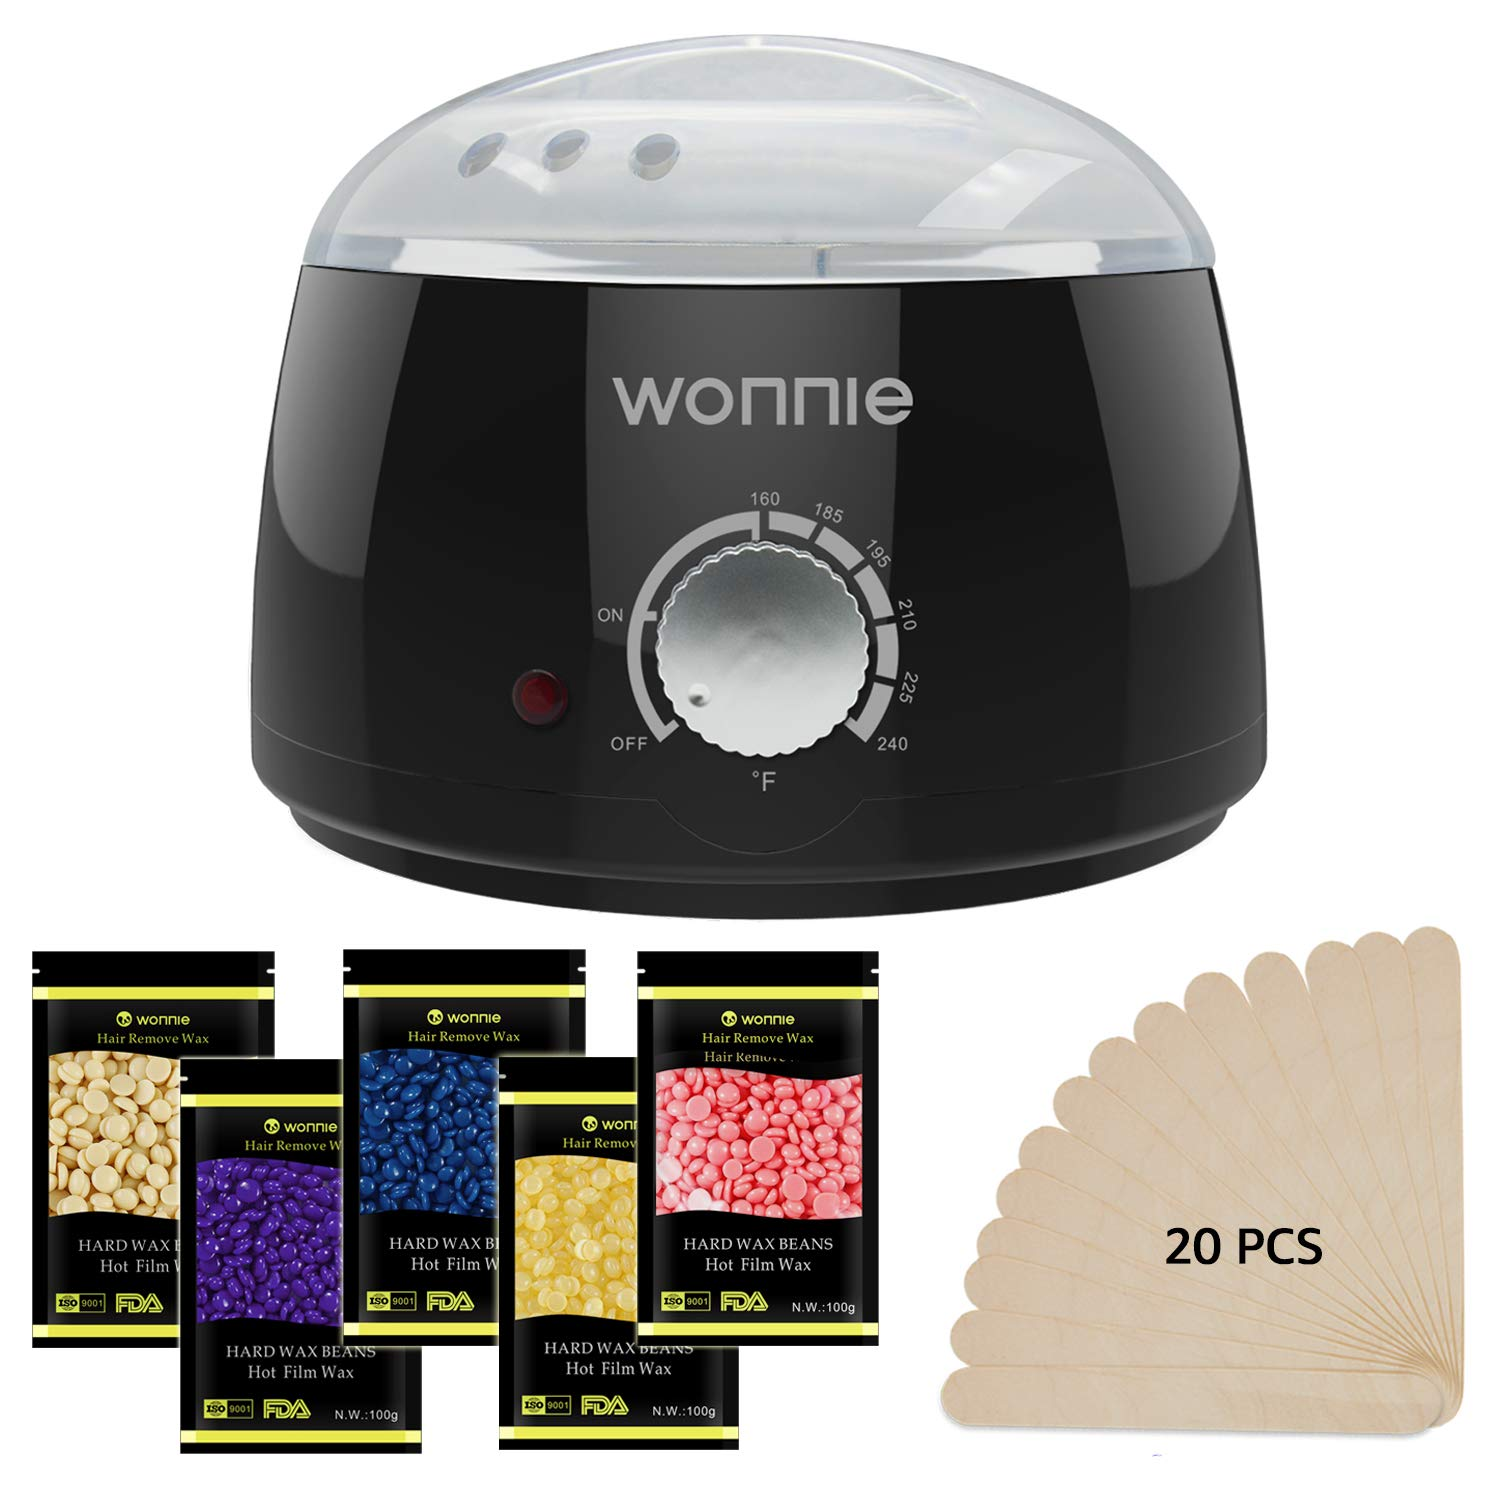 WONNIE Wax Heater Hair Removal Waxing Kits Professional Full Kit with 3 Packs of Hard Wax Beads Wax Warmer with 20 Wooden Sticks for Body Legs Bikini Limber Black